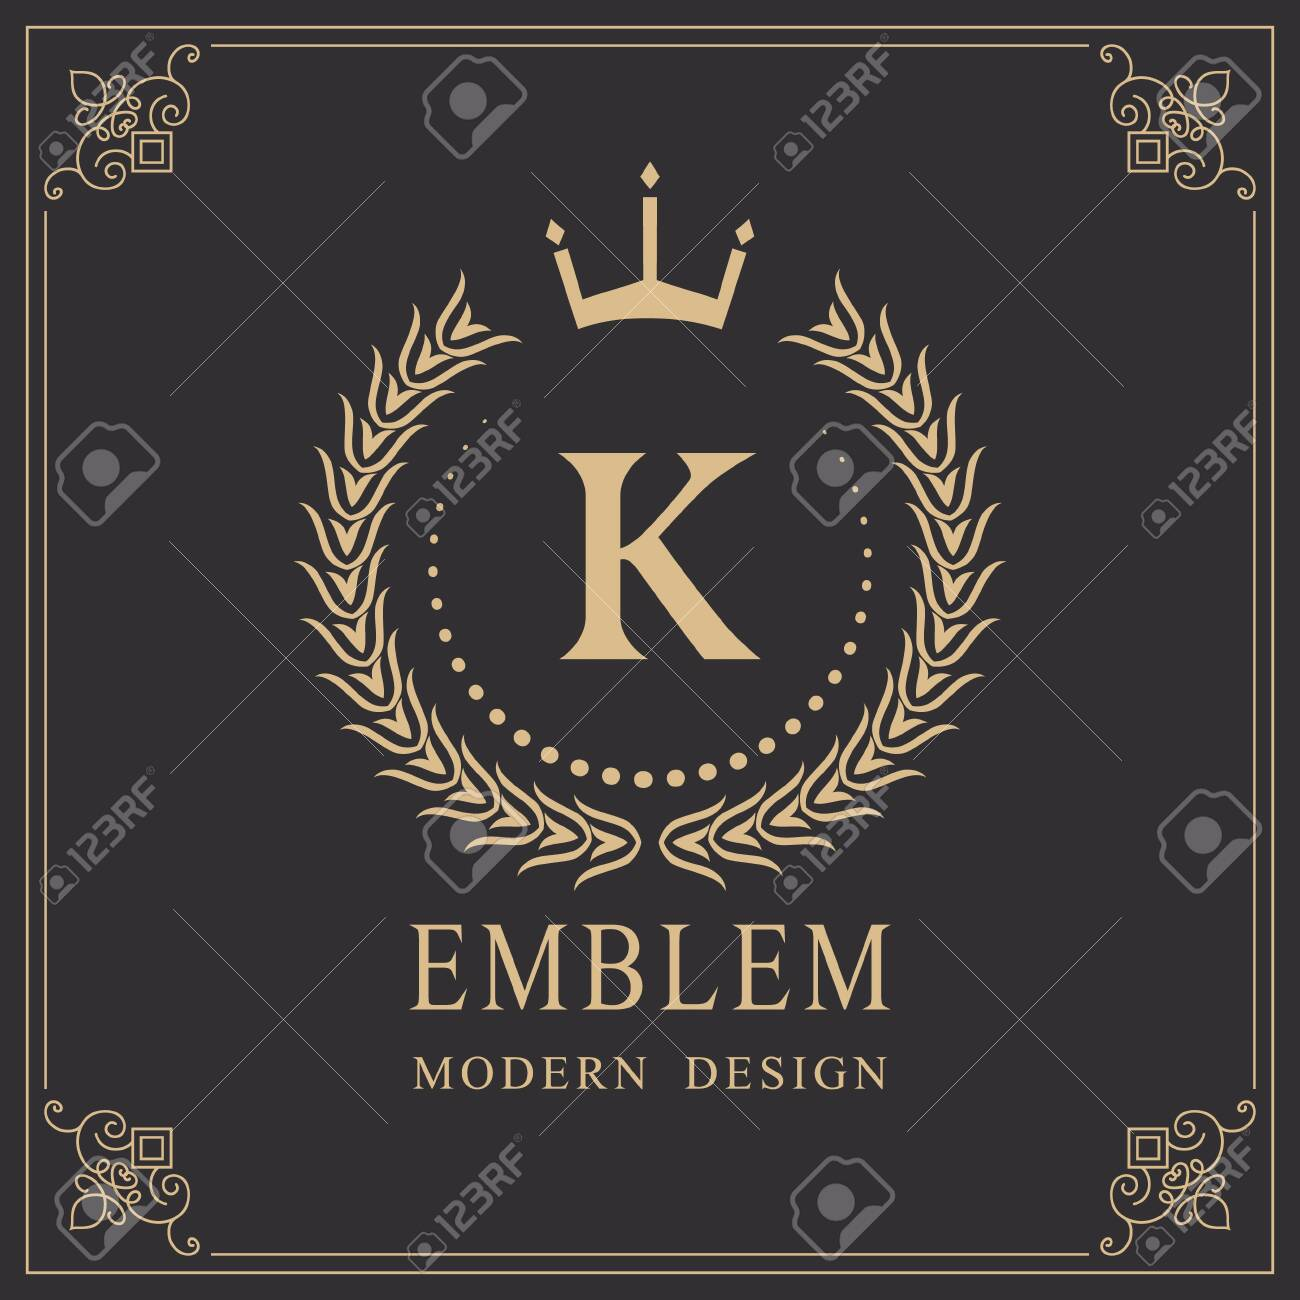 Coat of Arms. Initial Letter K. Heraldic Royal Frame with Crown. Abstract Laurel Wreath. Simple Classic Emblem. Round Composition. Graphics Style. Art Elements for Logo Design. Vector Illustration - 123758172